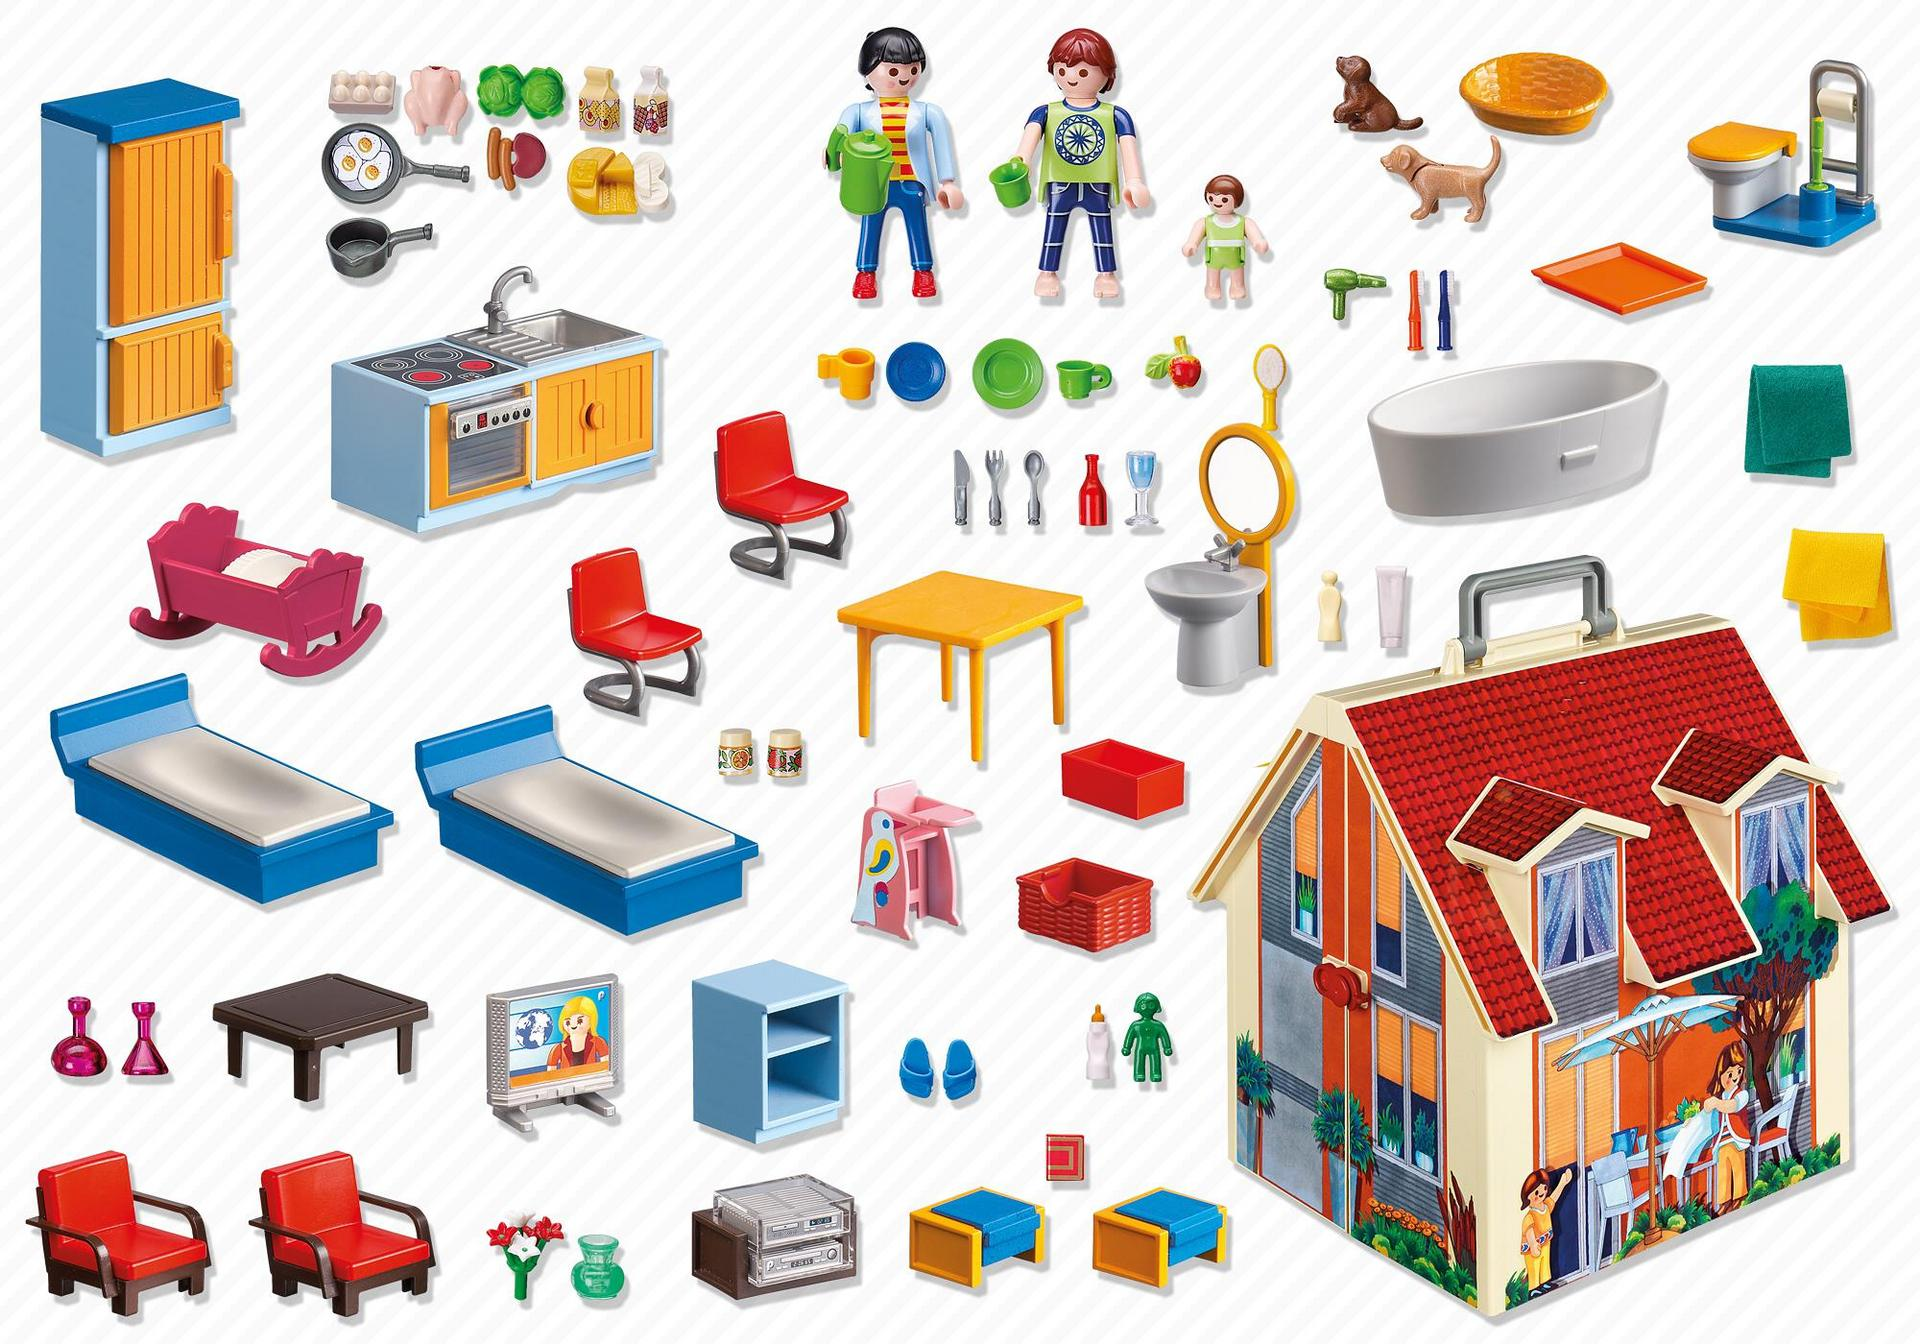 Take Along Modern Doll House - 5167 - PLAYMOBIL® USA